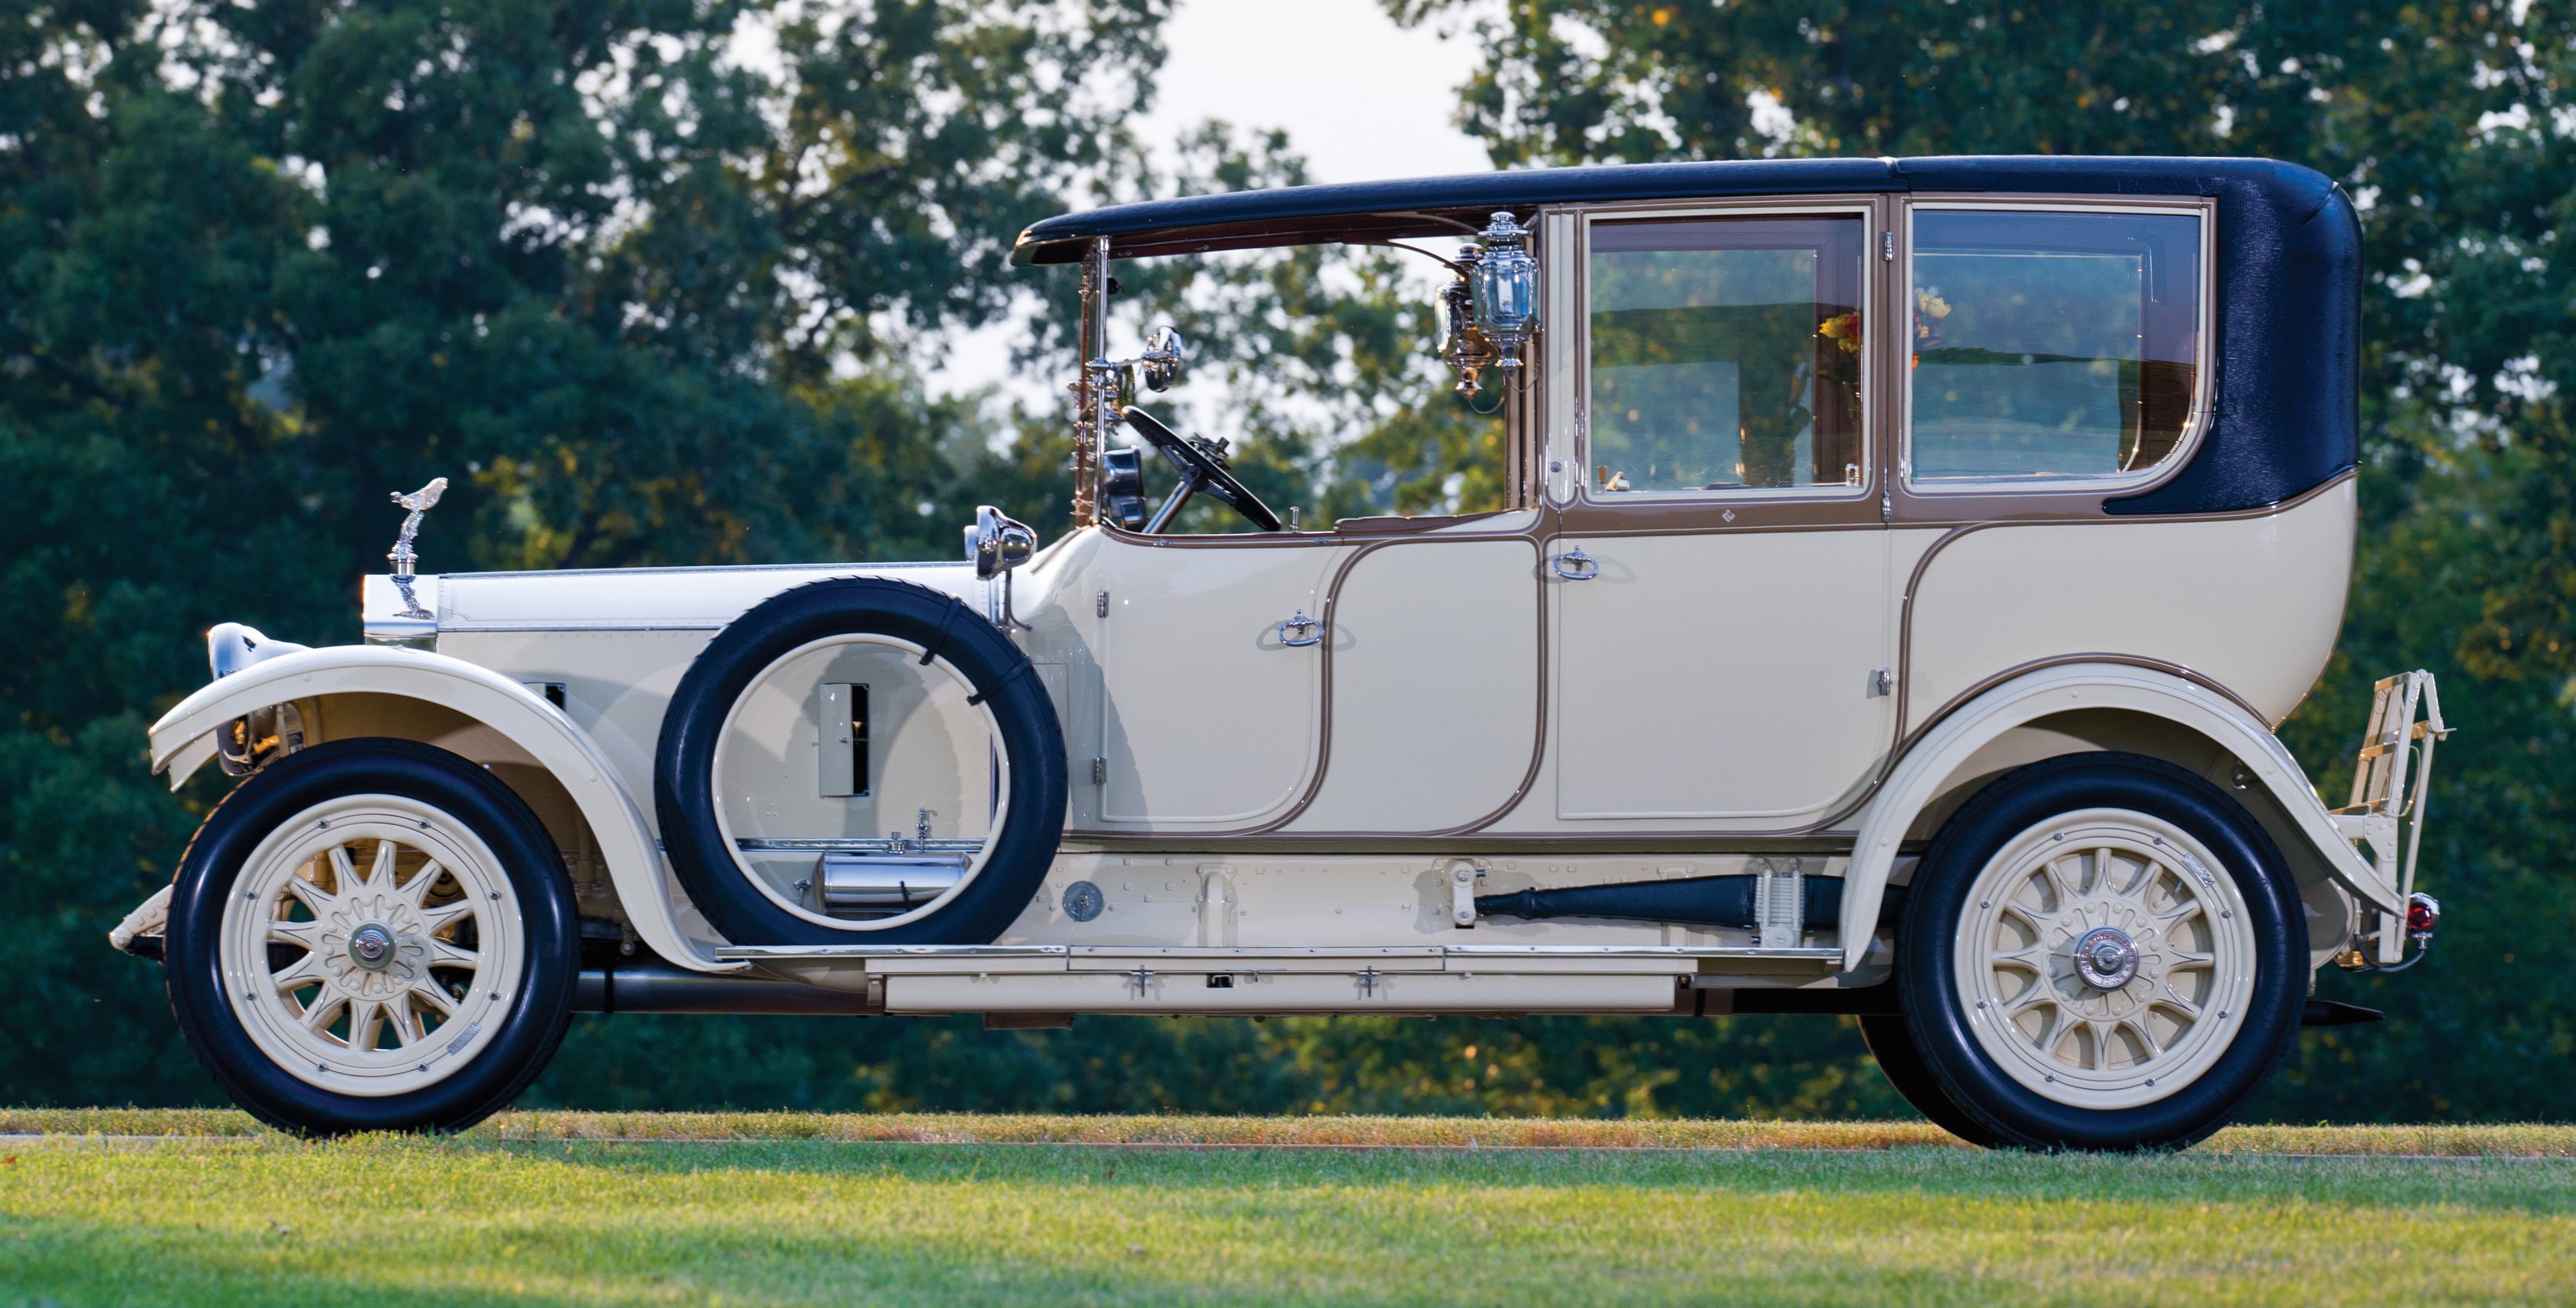 1914 Rolls-Royce 40/50 HP Silver Ghost | RM Sotheby's photo by Greg Keysar